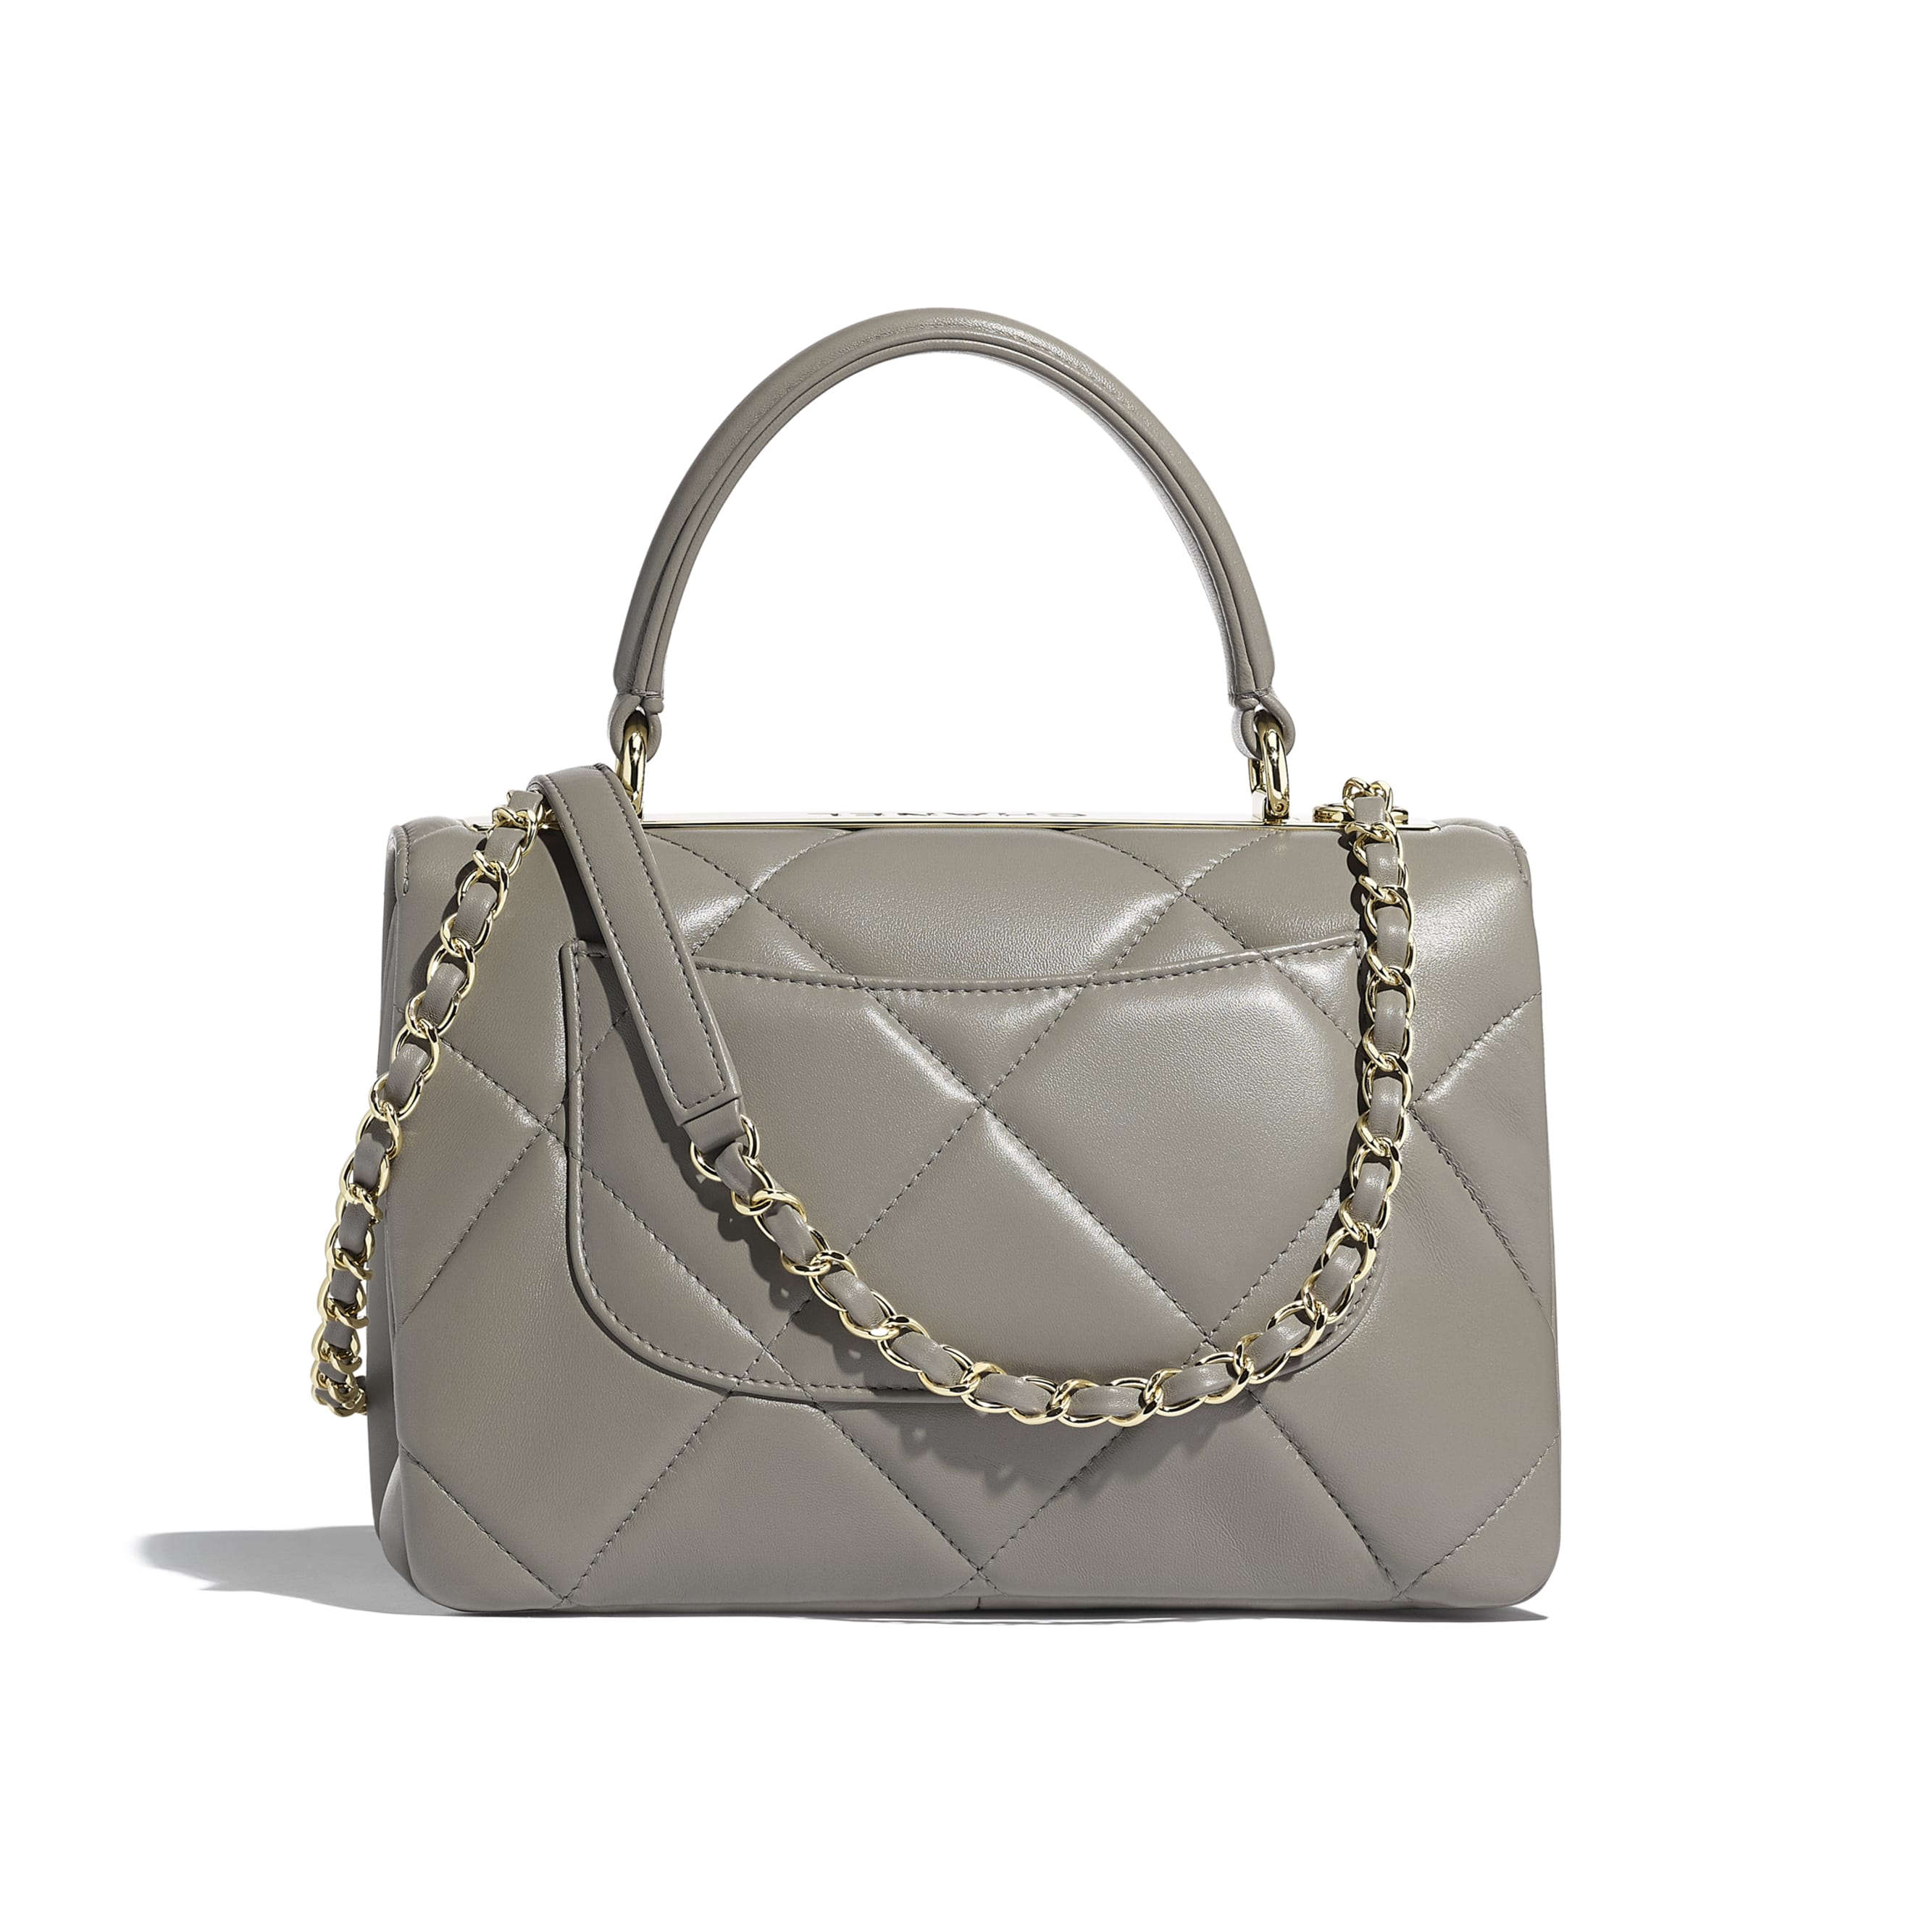 Small Flap Bag with Top Handle - Gray - Lambskin & Gold-Tone Metal - Alternative view - see standard sized version